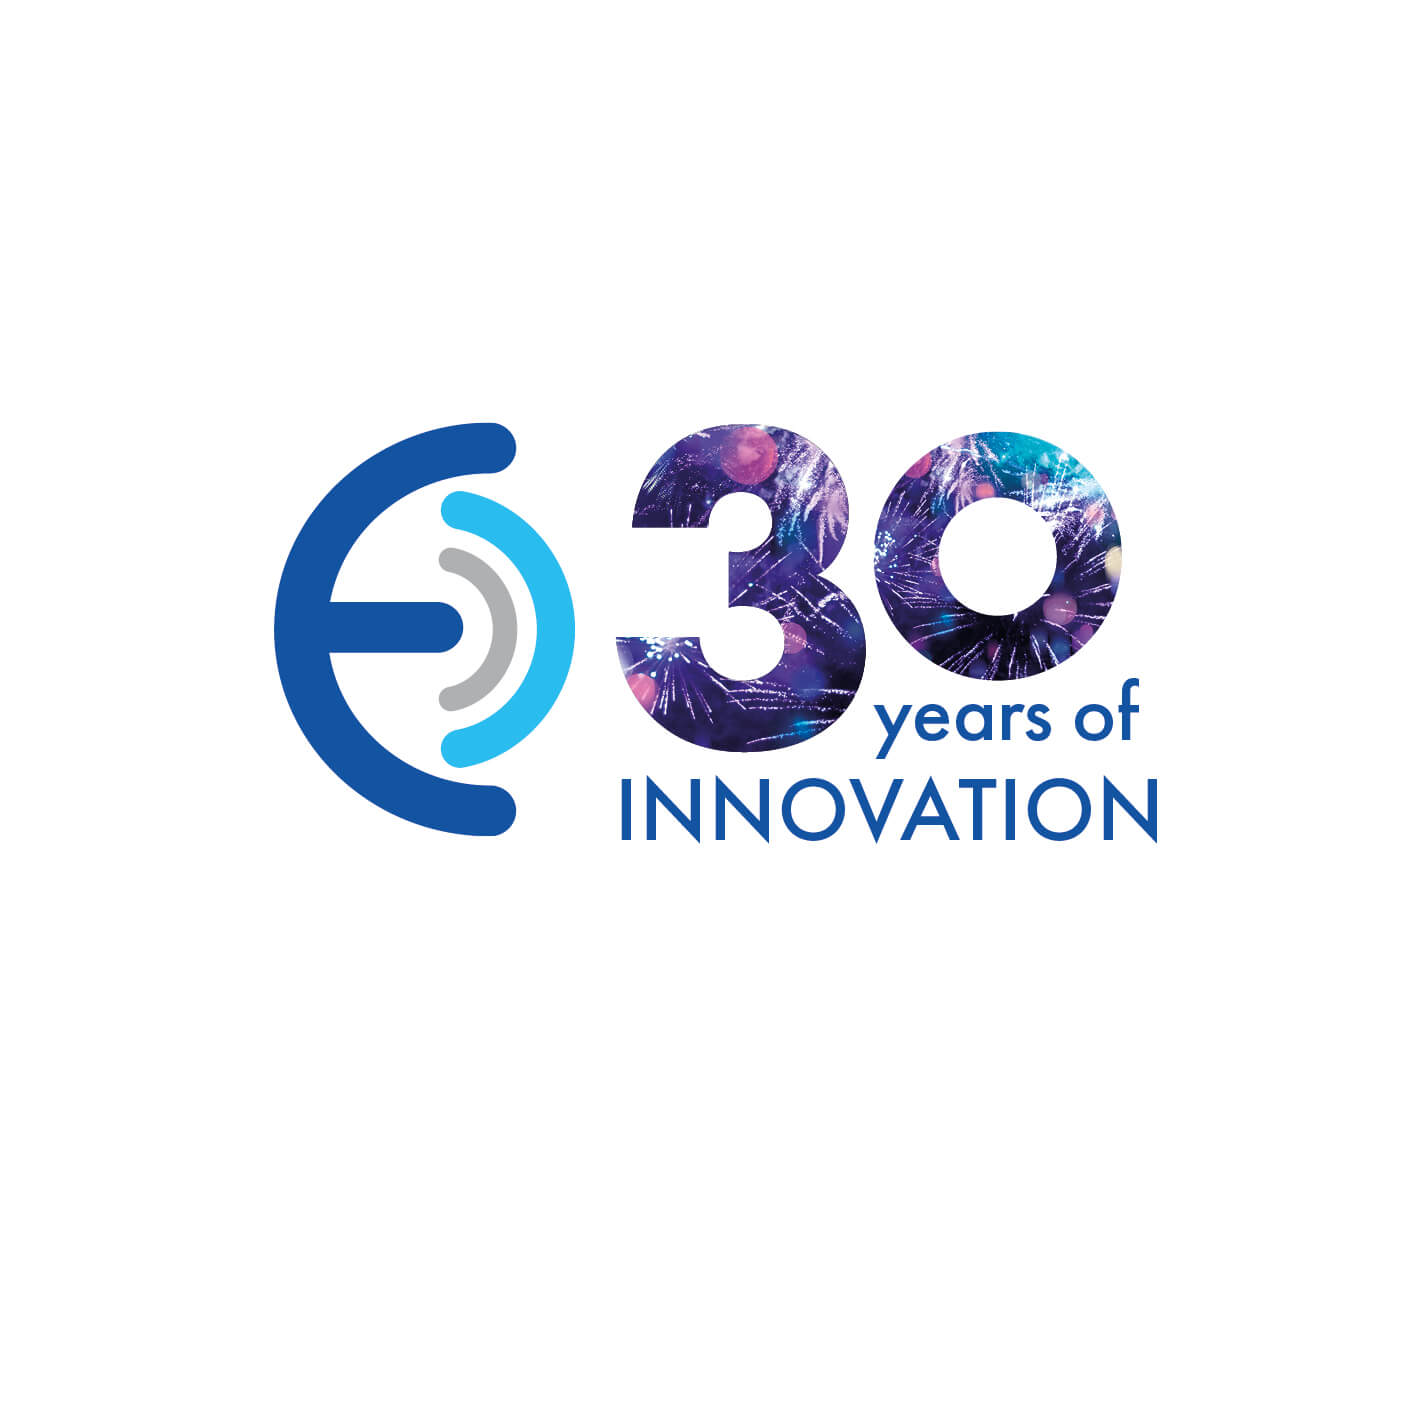 Encocam 30 years of innovation